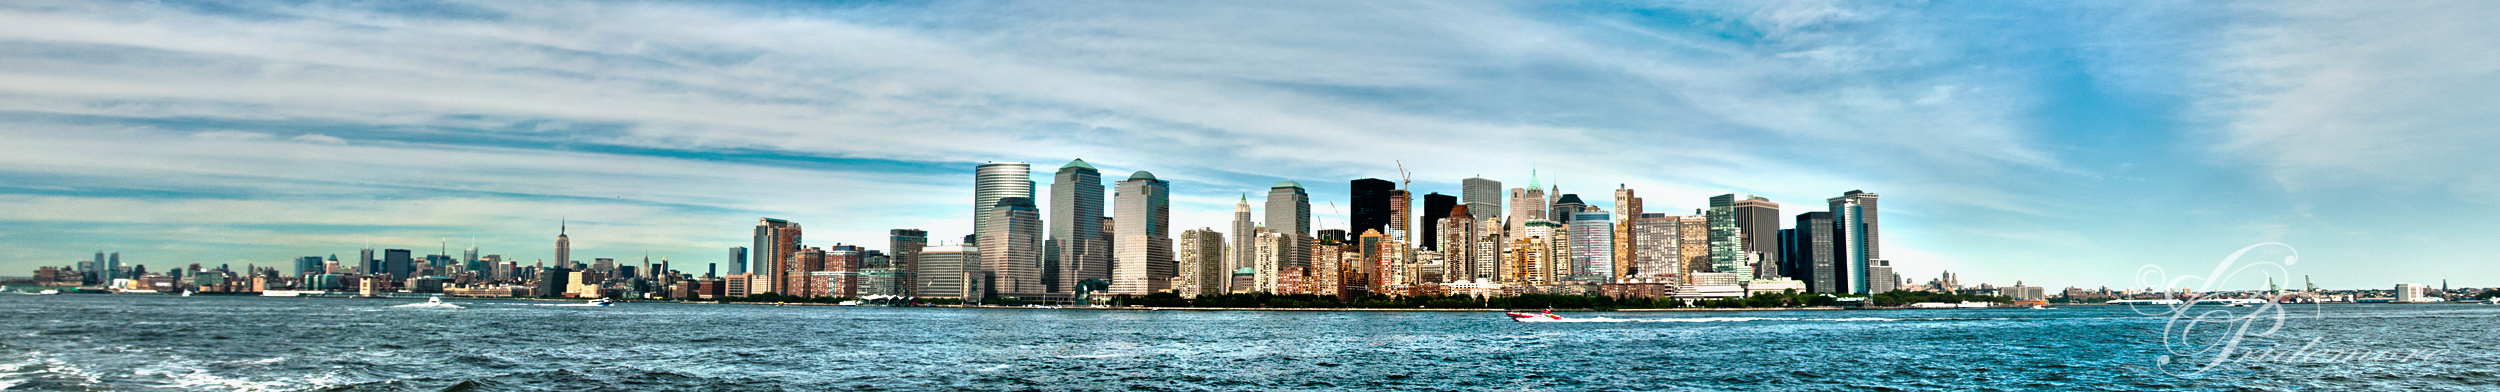 New York Skyline Panorama by deviouselite